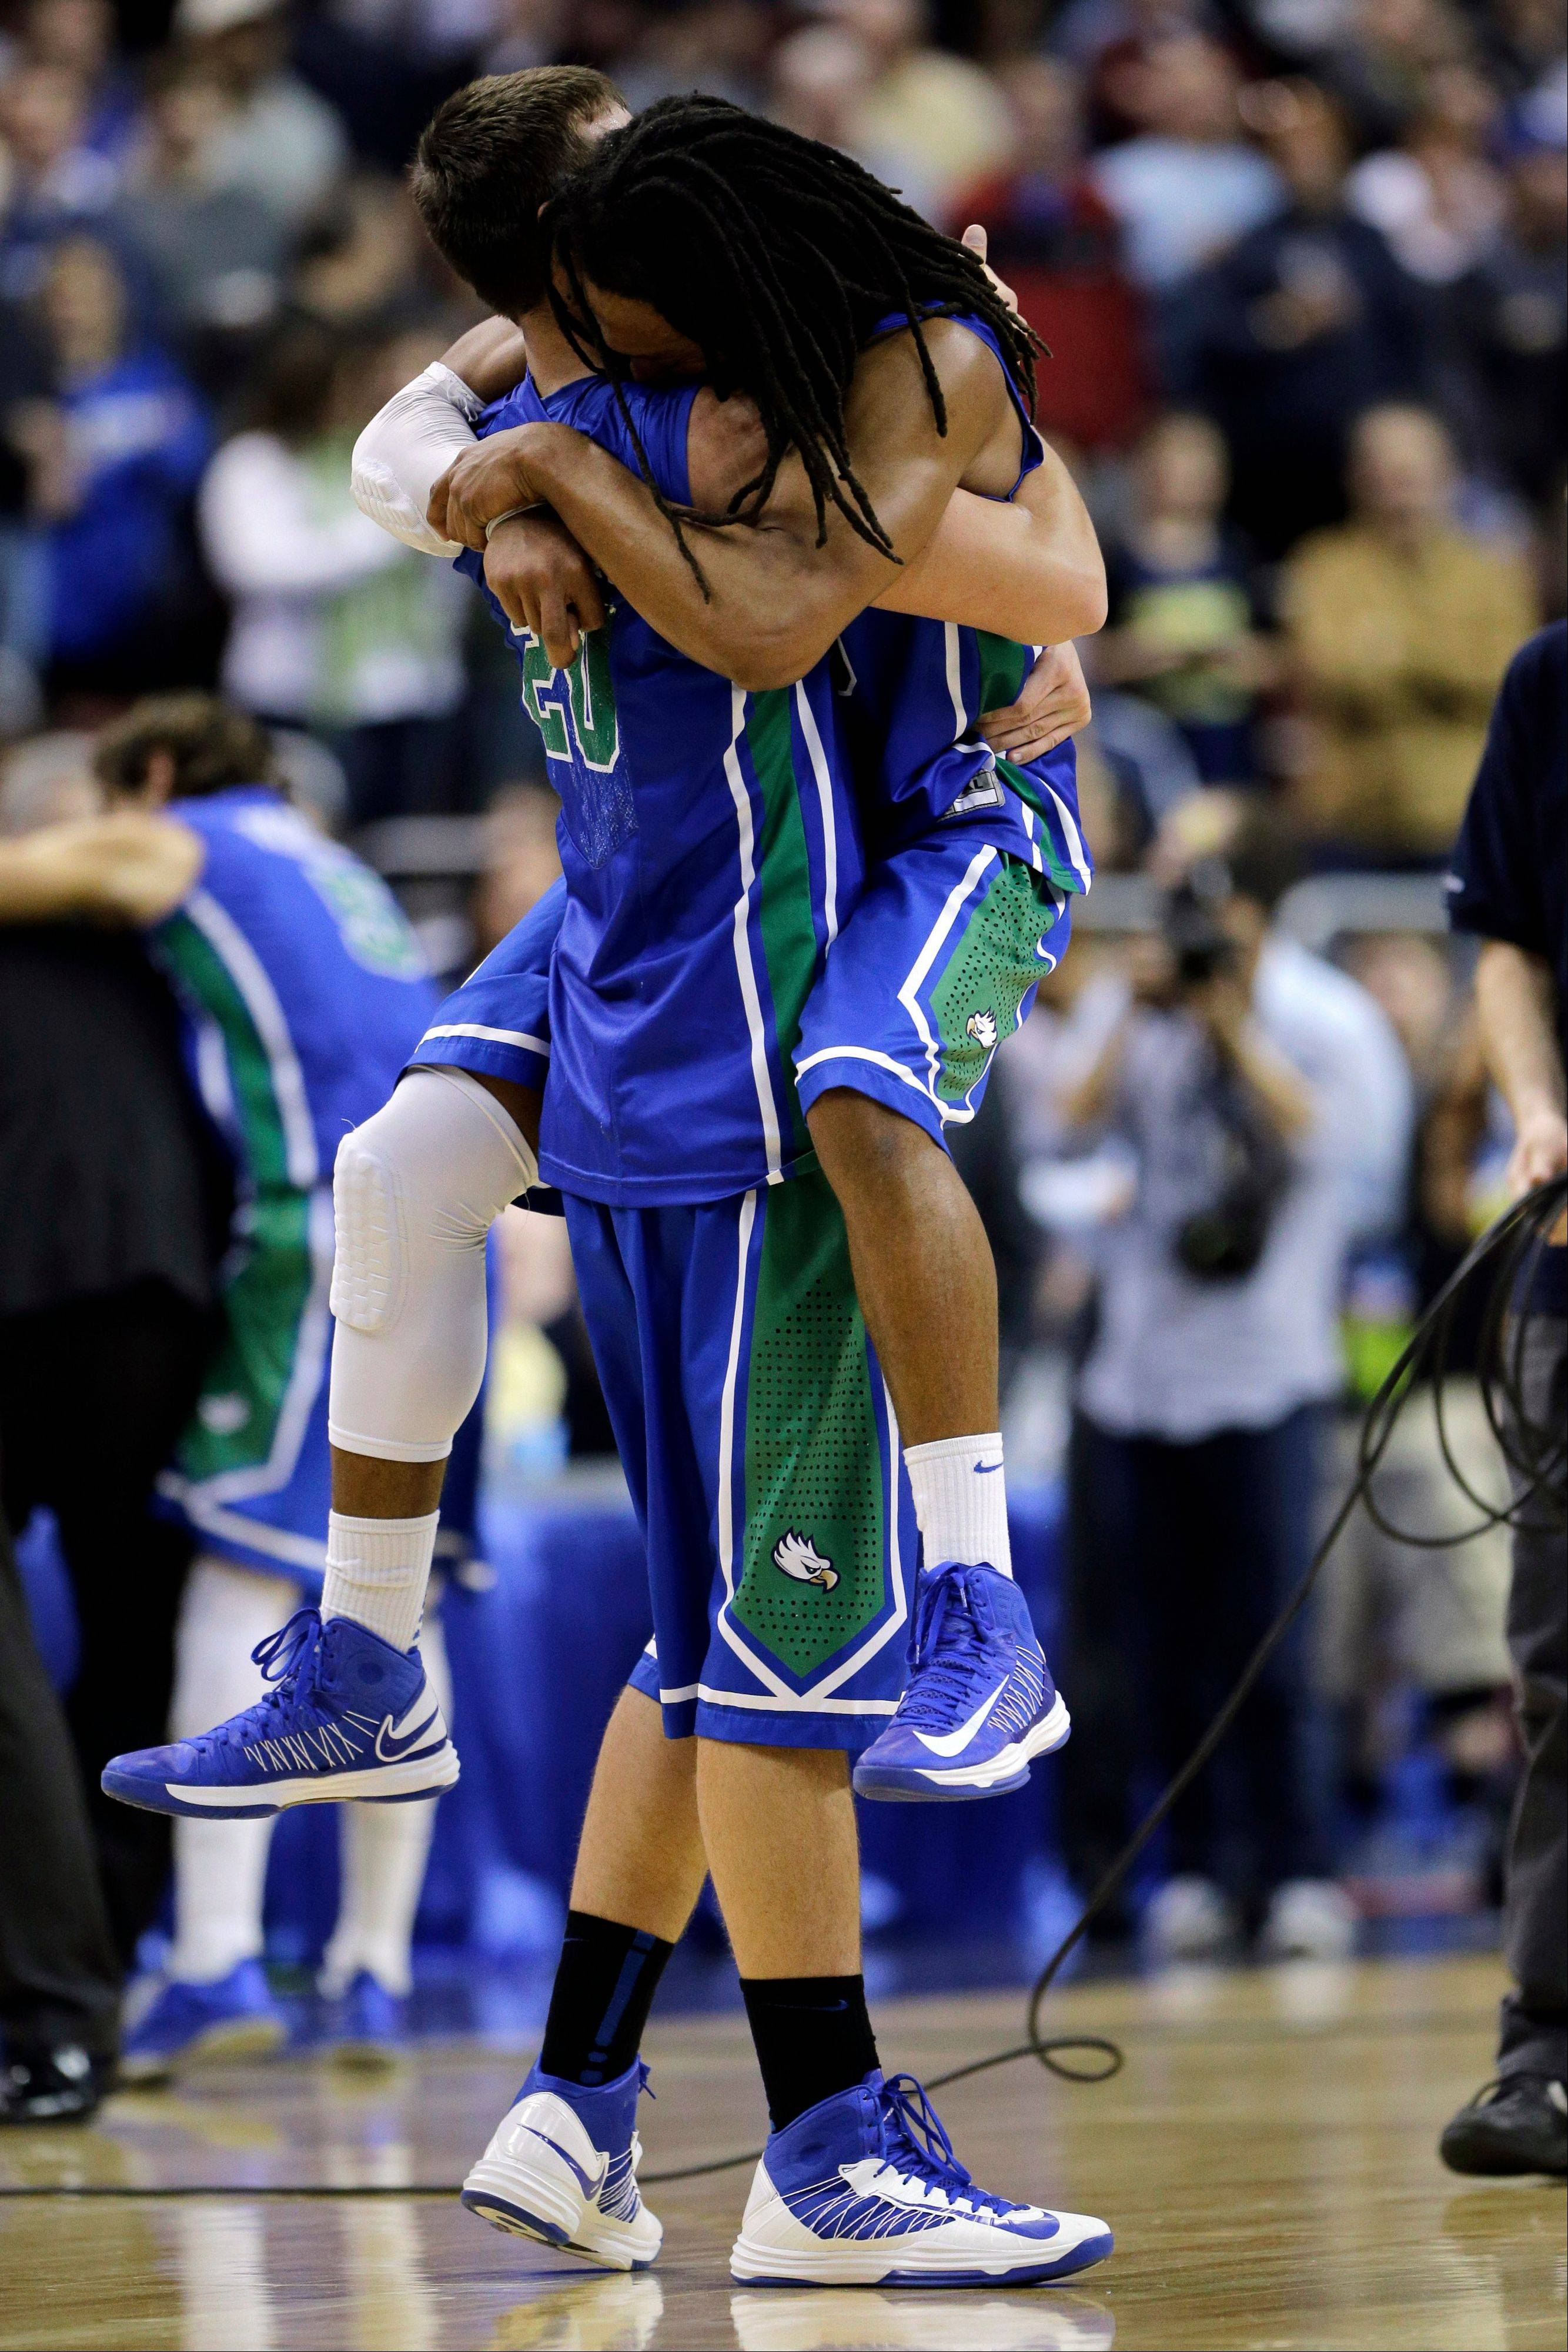 Florida Gulf Coast's Chase Fieler, left, and Sherwood Brown celebrate after winning a third-round game against San Diego State, 81-71, in the NCAA college basketball tournament, Sunday, March 24, 2013, in Philadelphia.